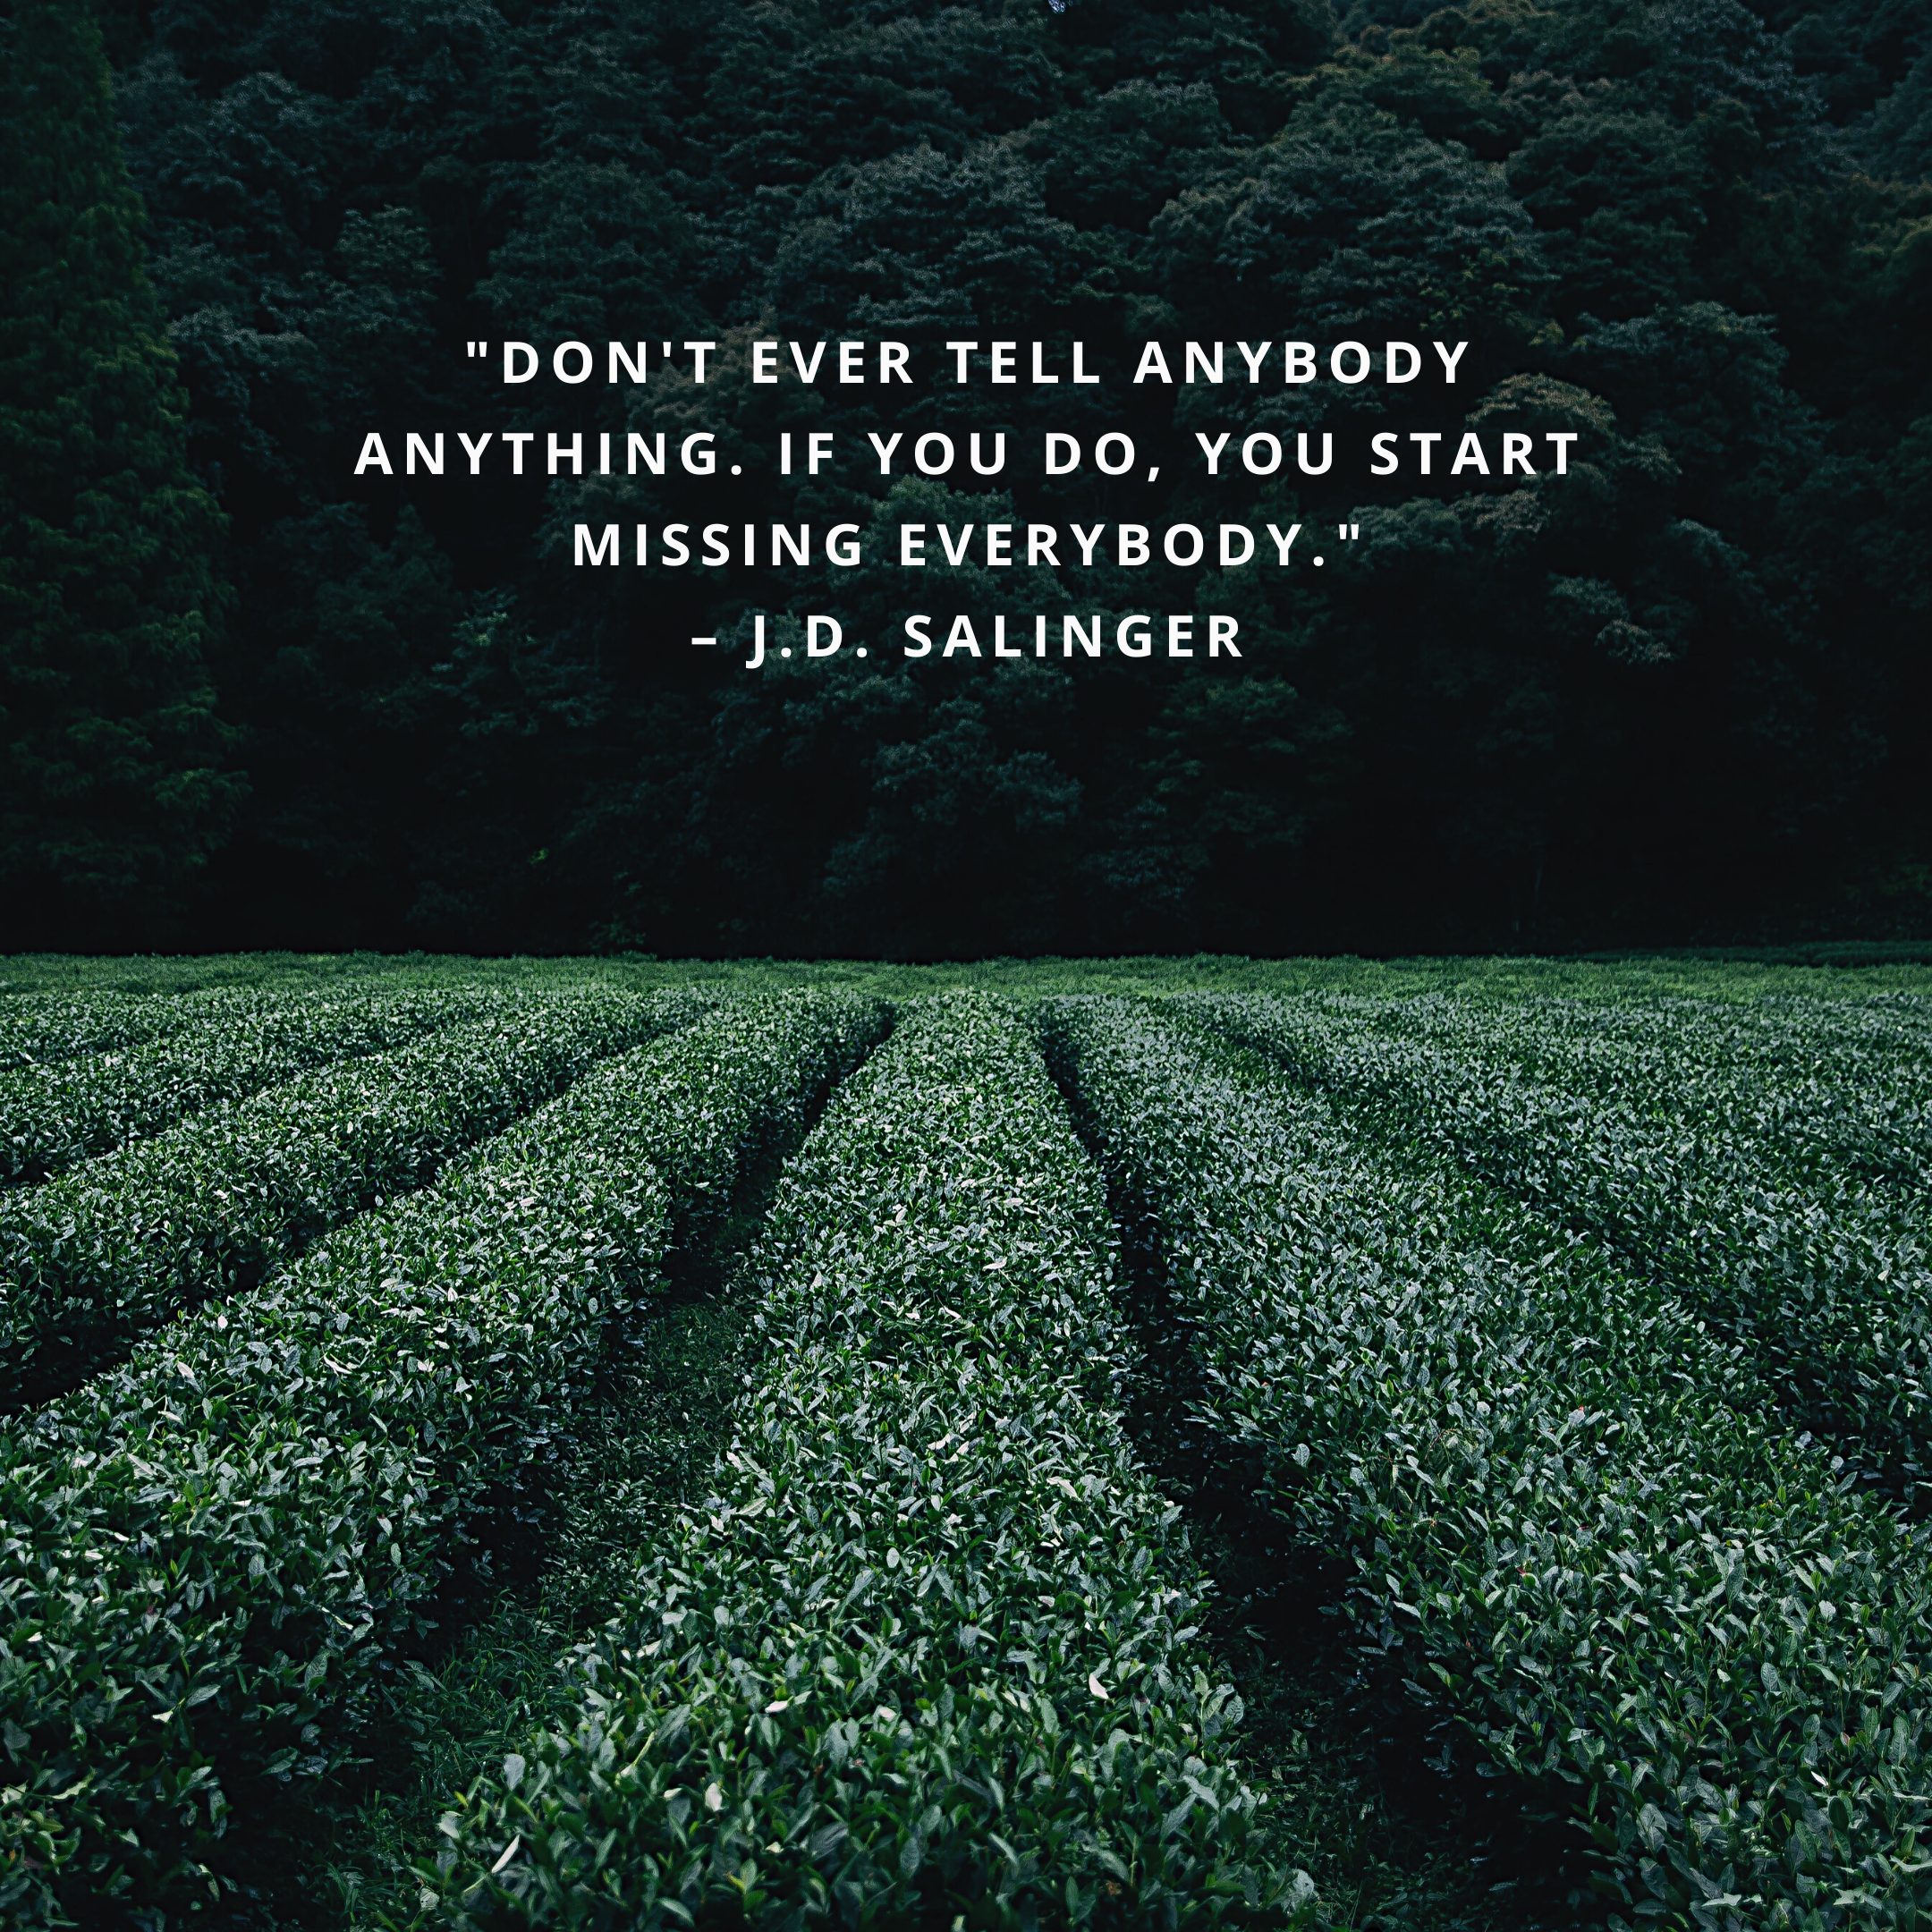 """""""Don't ever tell anybody anything. If you do, you start missing everybody."""" –J.D. Salinger"""